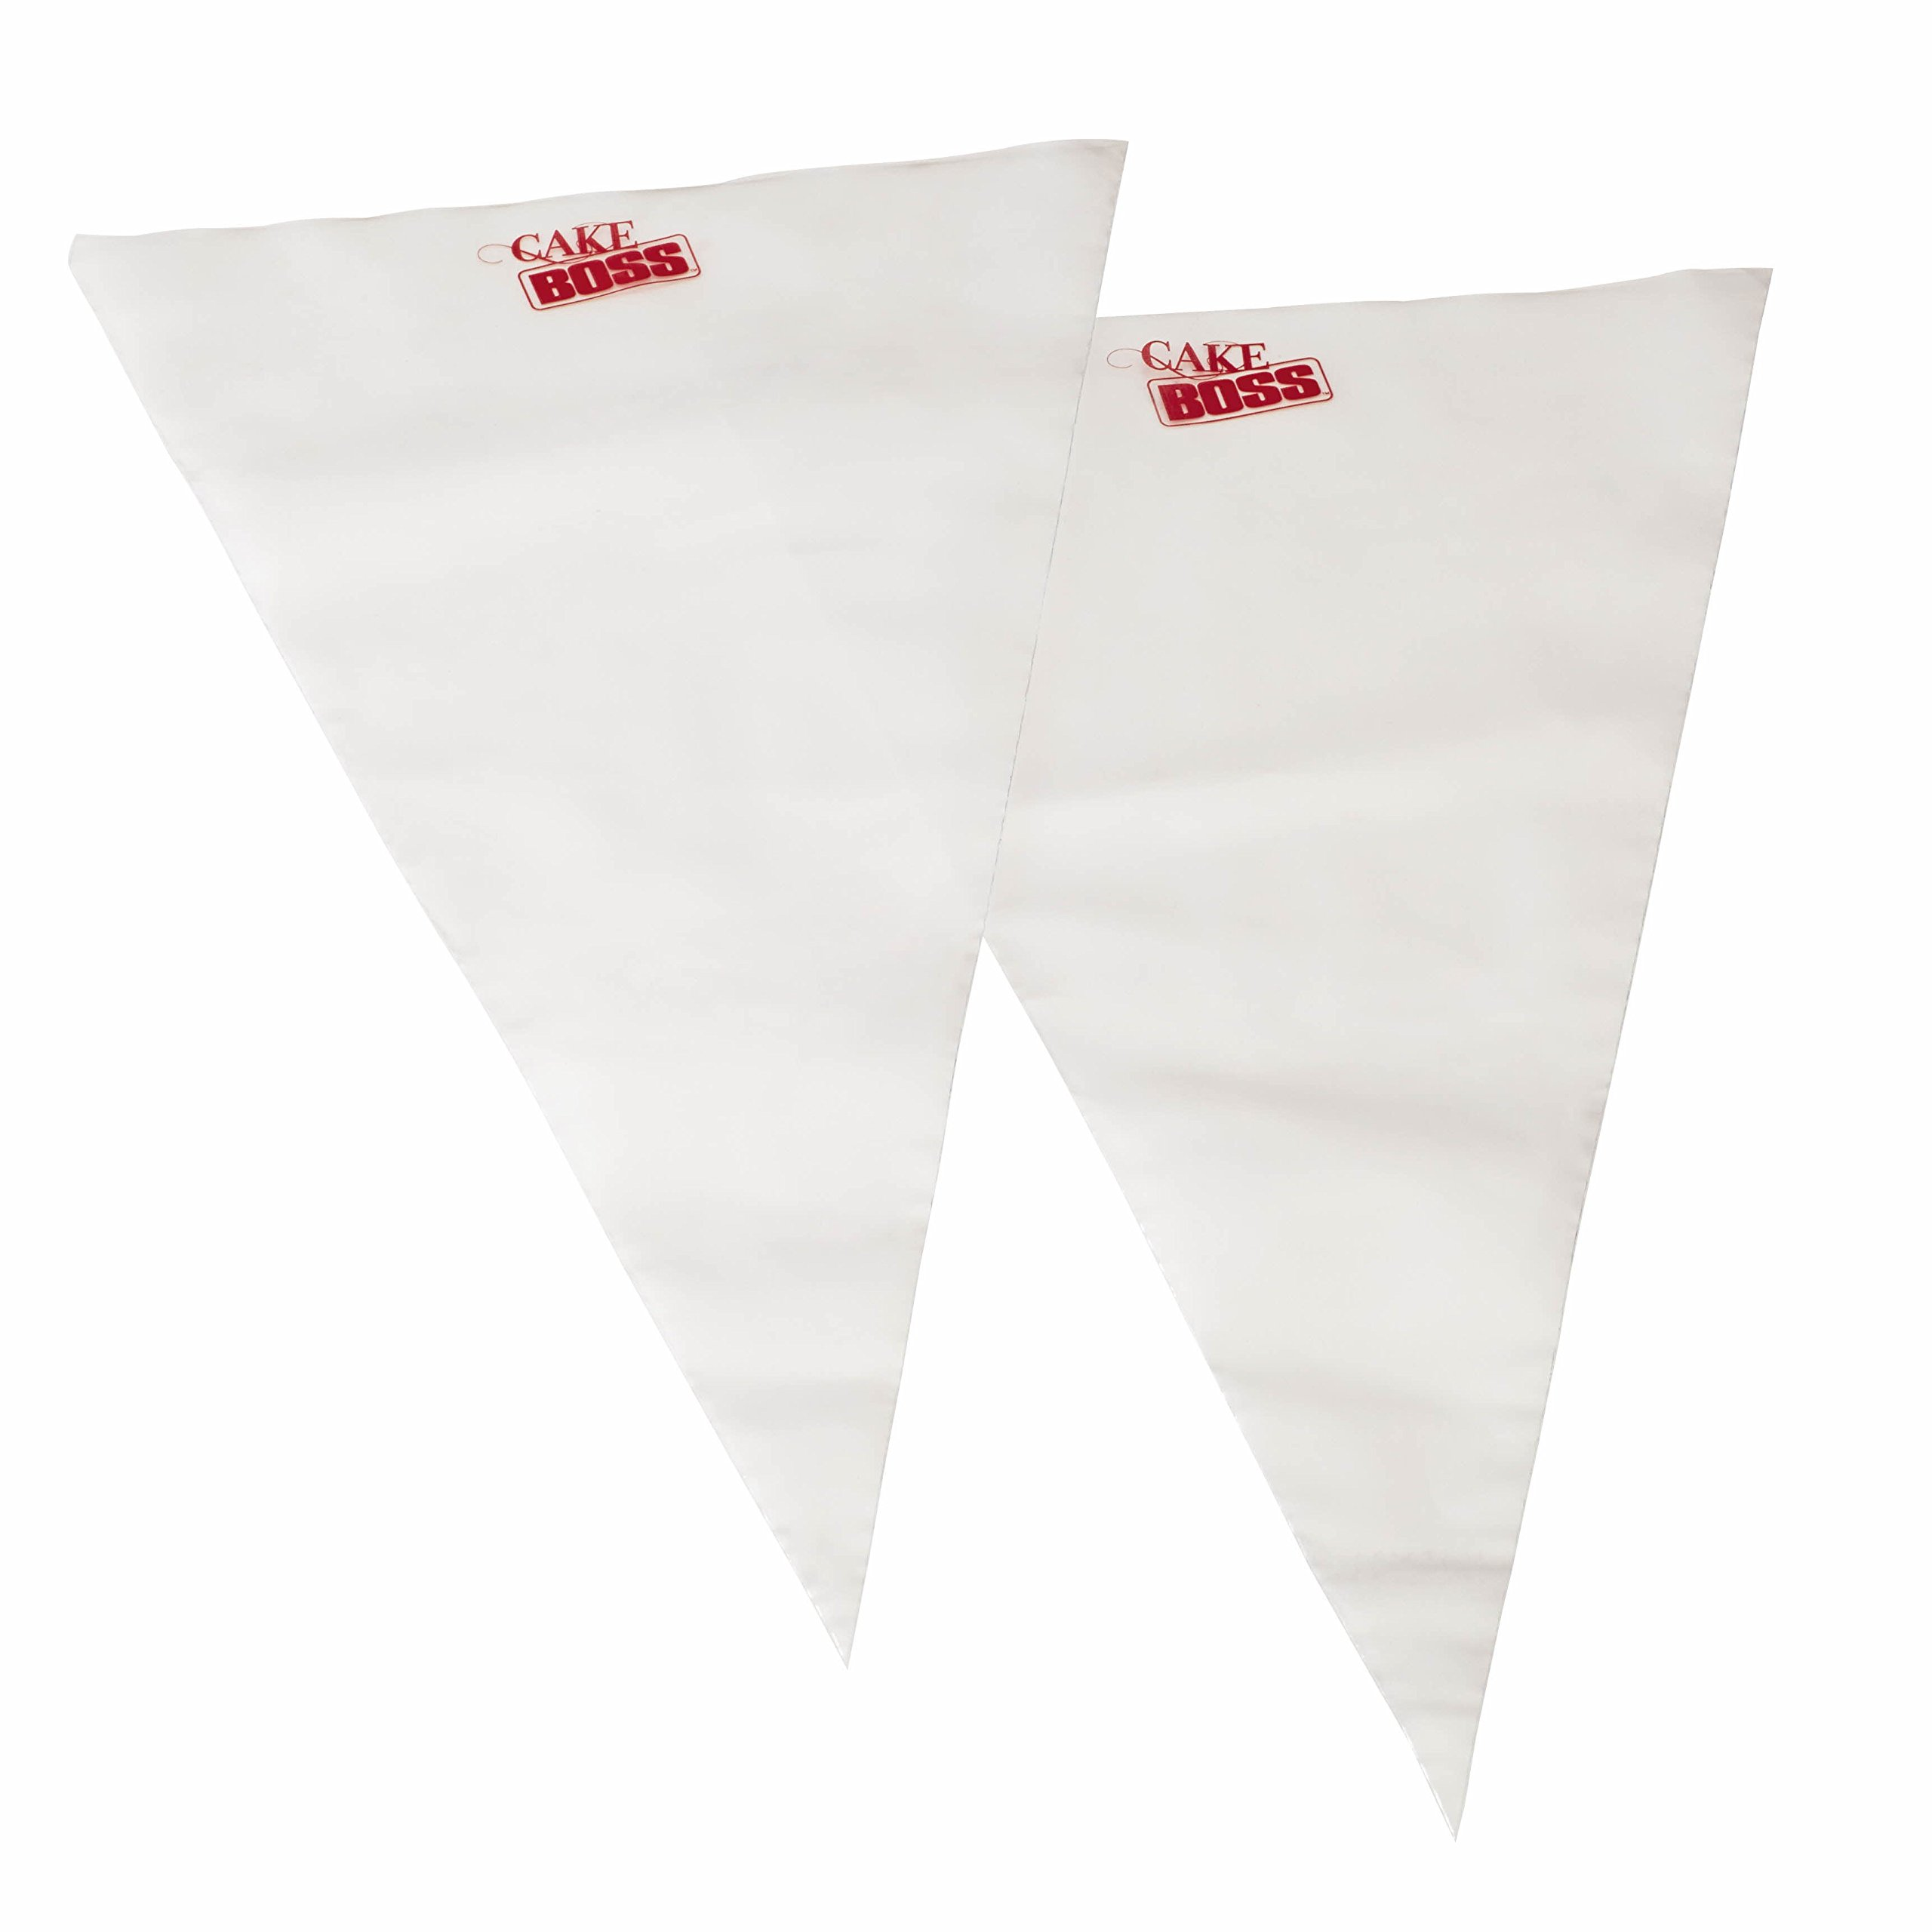 Cake Boss Decorating Tools 18-Inch Disposable Icing Duo Decorating Bags, 25 Count